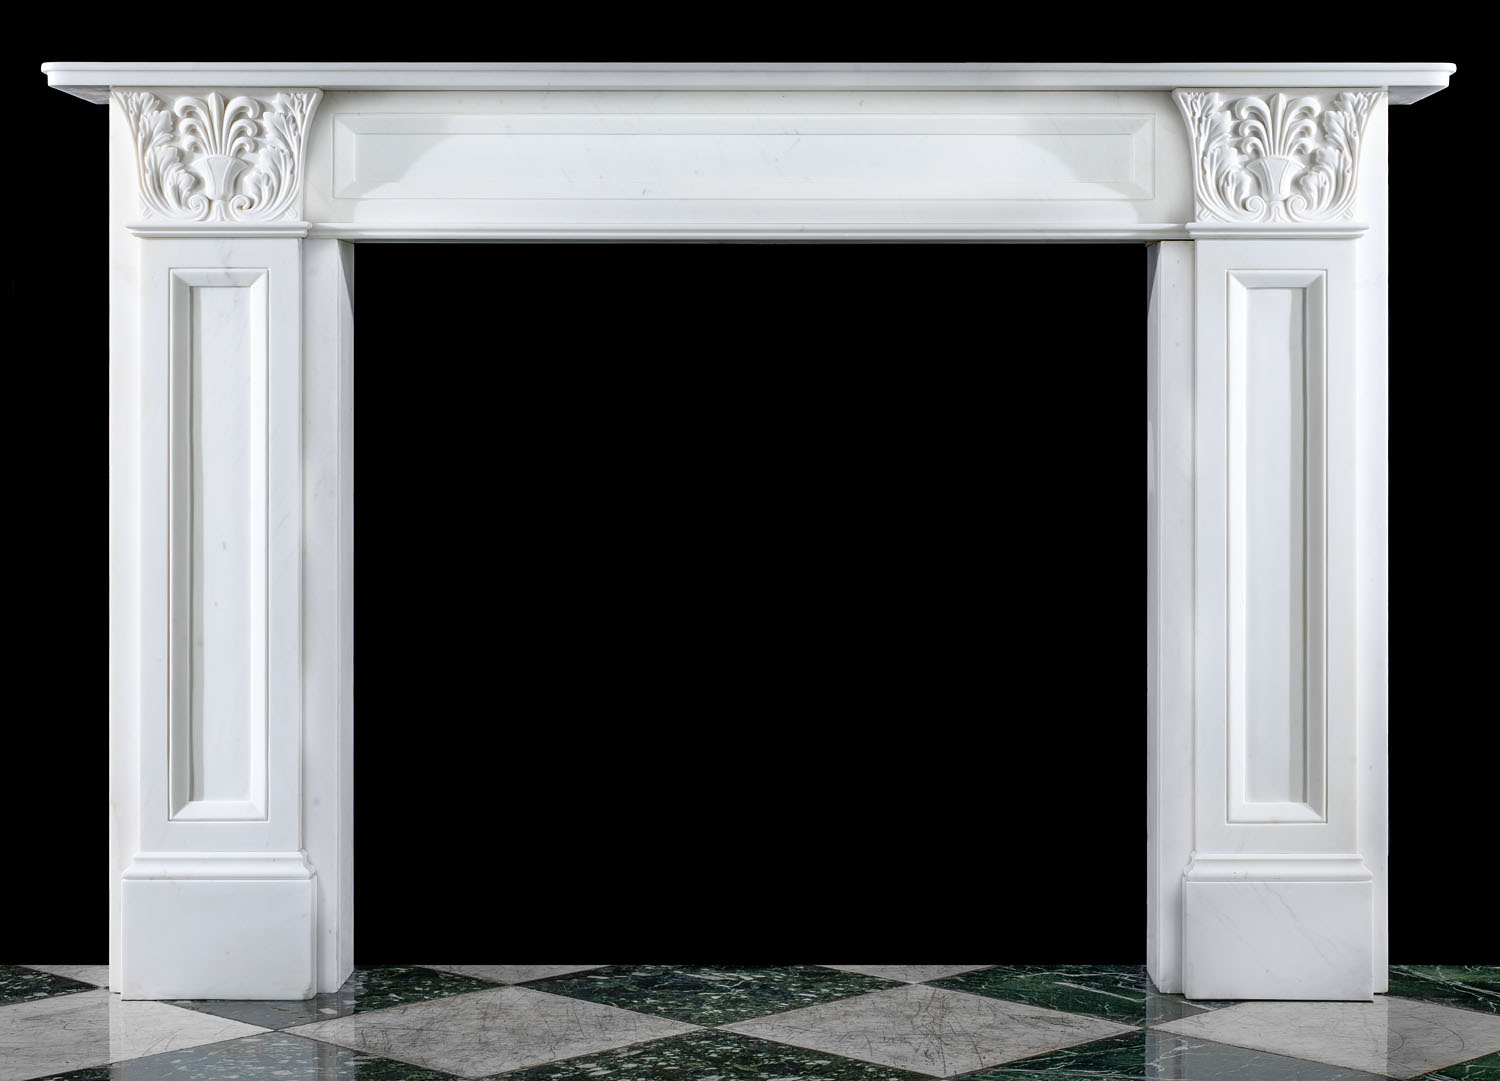 design fireplace interior electric with inside tile sur drinkmorinaga for images mantel ideas stone white faux mantels ornament pictures marble wall gas unique and